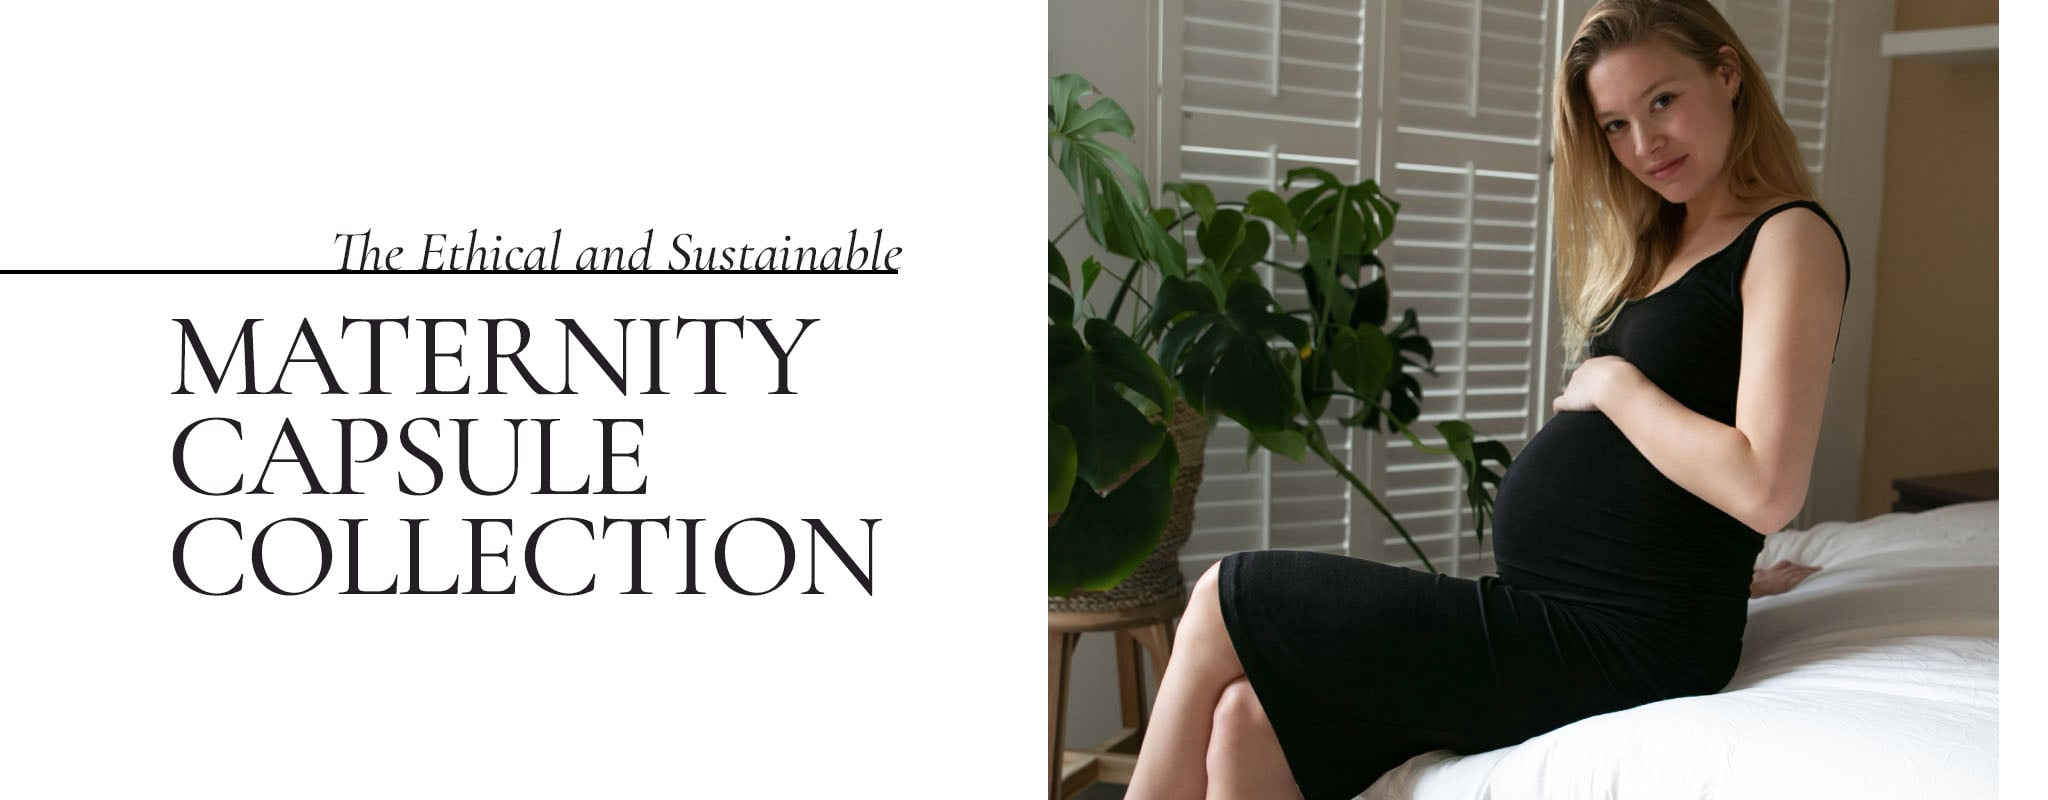 The Ethical and Sustainable Maternity Capsule Collection